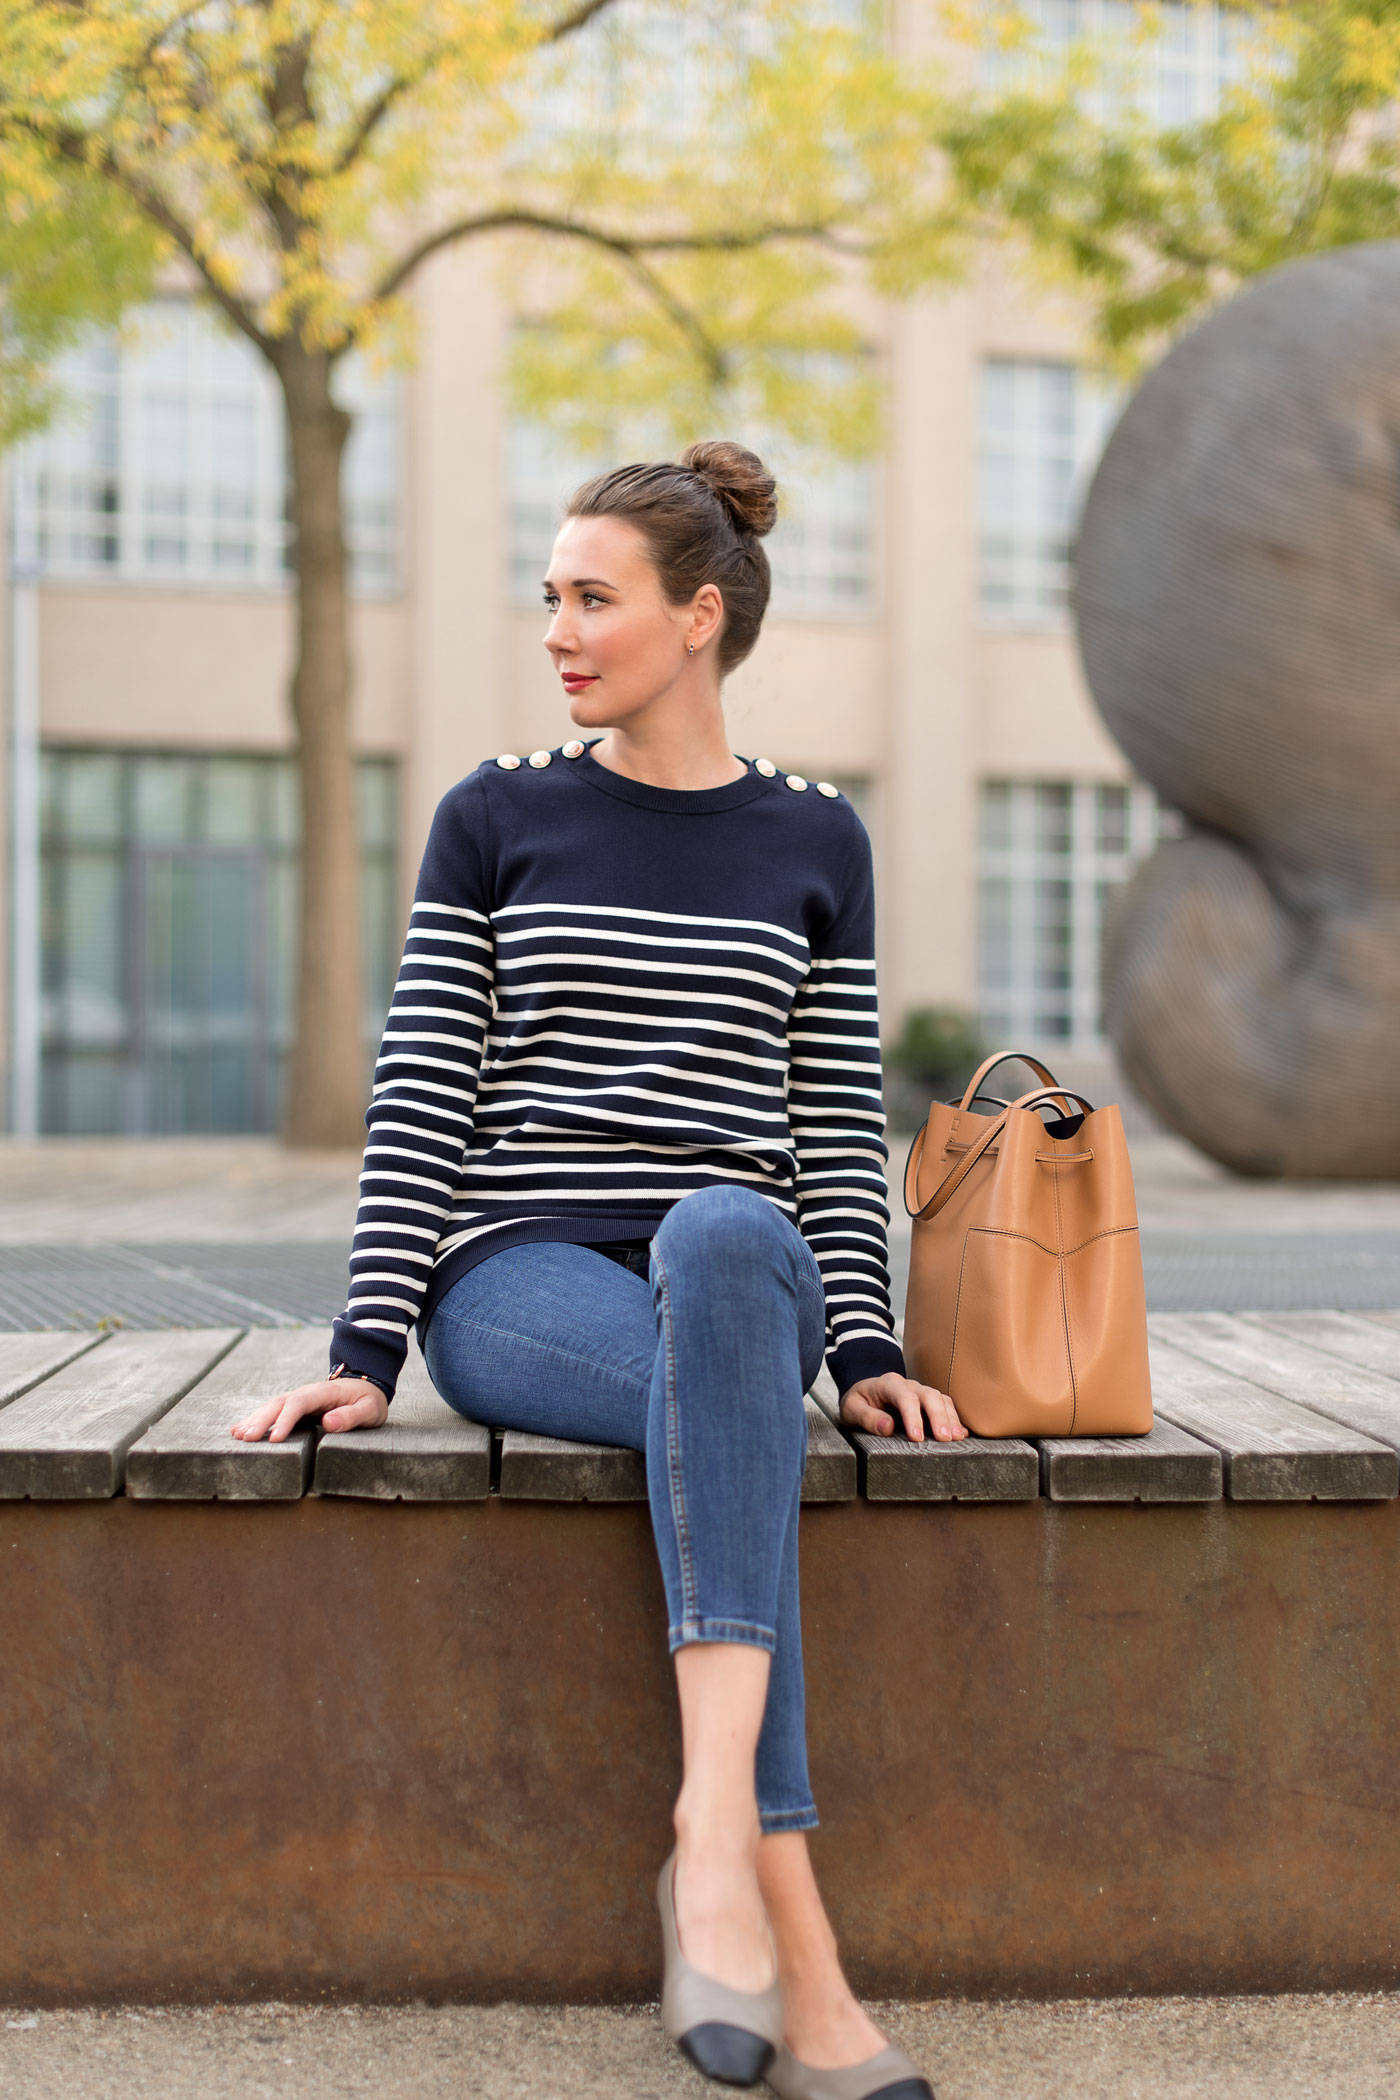 petit-bateau-sweater-zara-ballerina-tory-burch-bucket-bag-tory-burch-paul-hewitt-armband-fashionblog